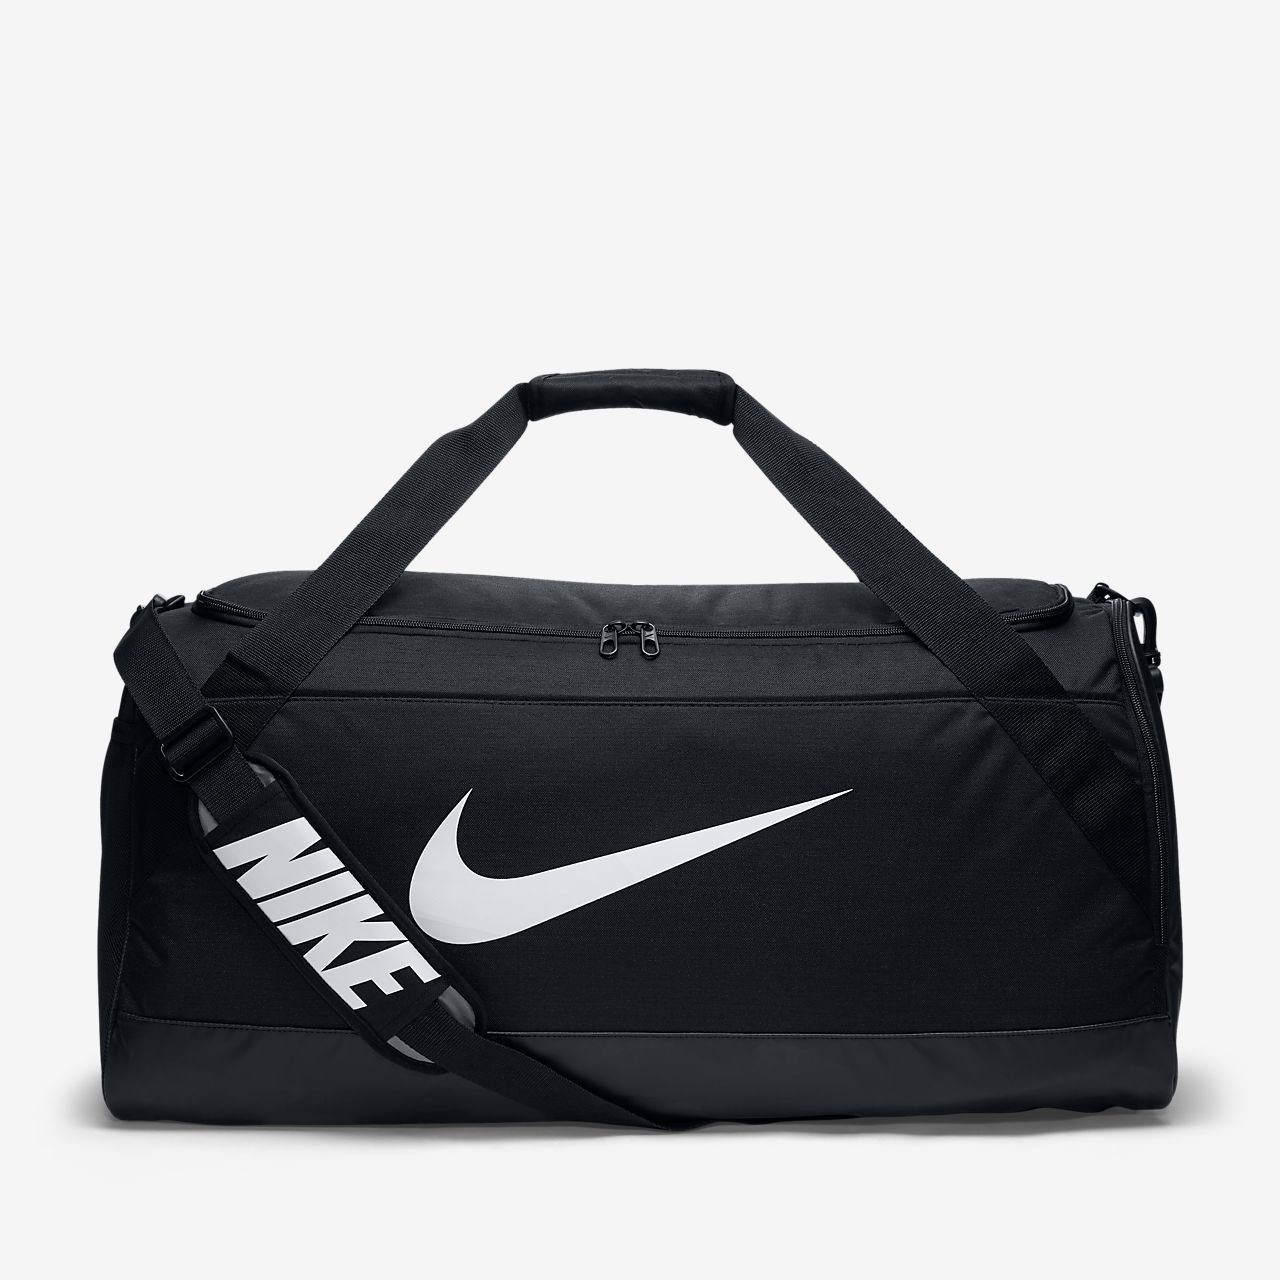 a0e2dccb464c Nike Brasilia (Large) Training Duffel Bag. Nike.com GB